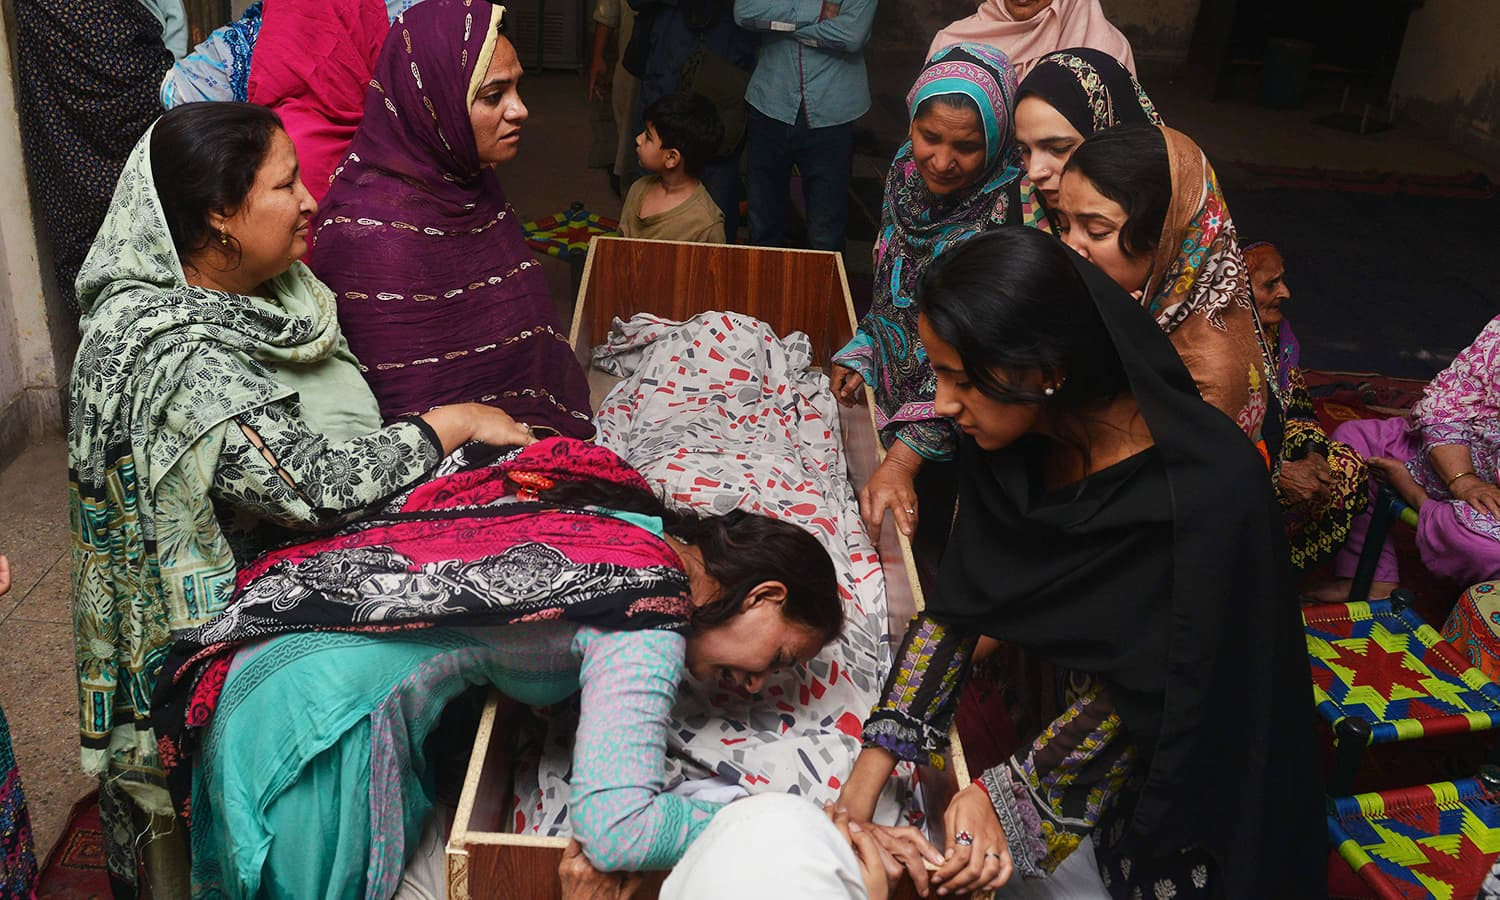 Relatives mourn over the body of a victim during a funeral following an overnight suicide bombing in Lahore on March 28, 2016.─AFP